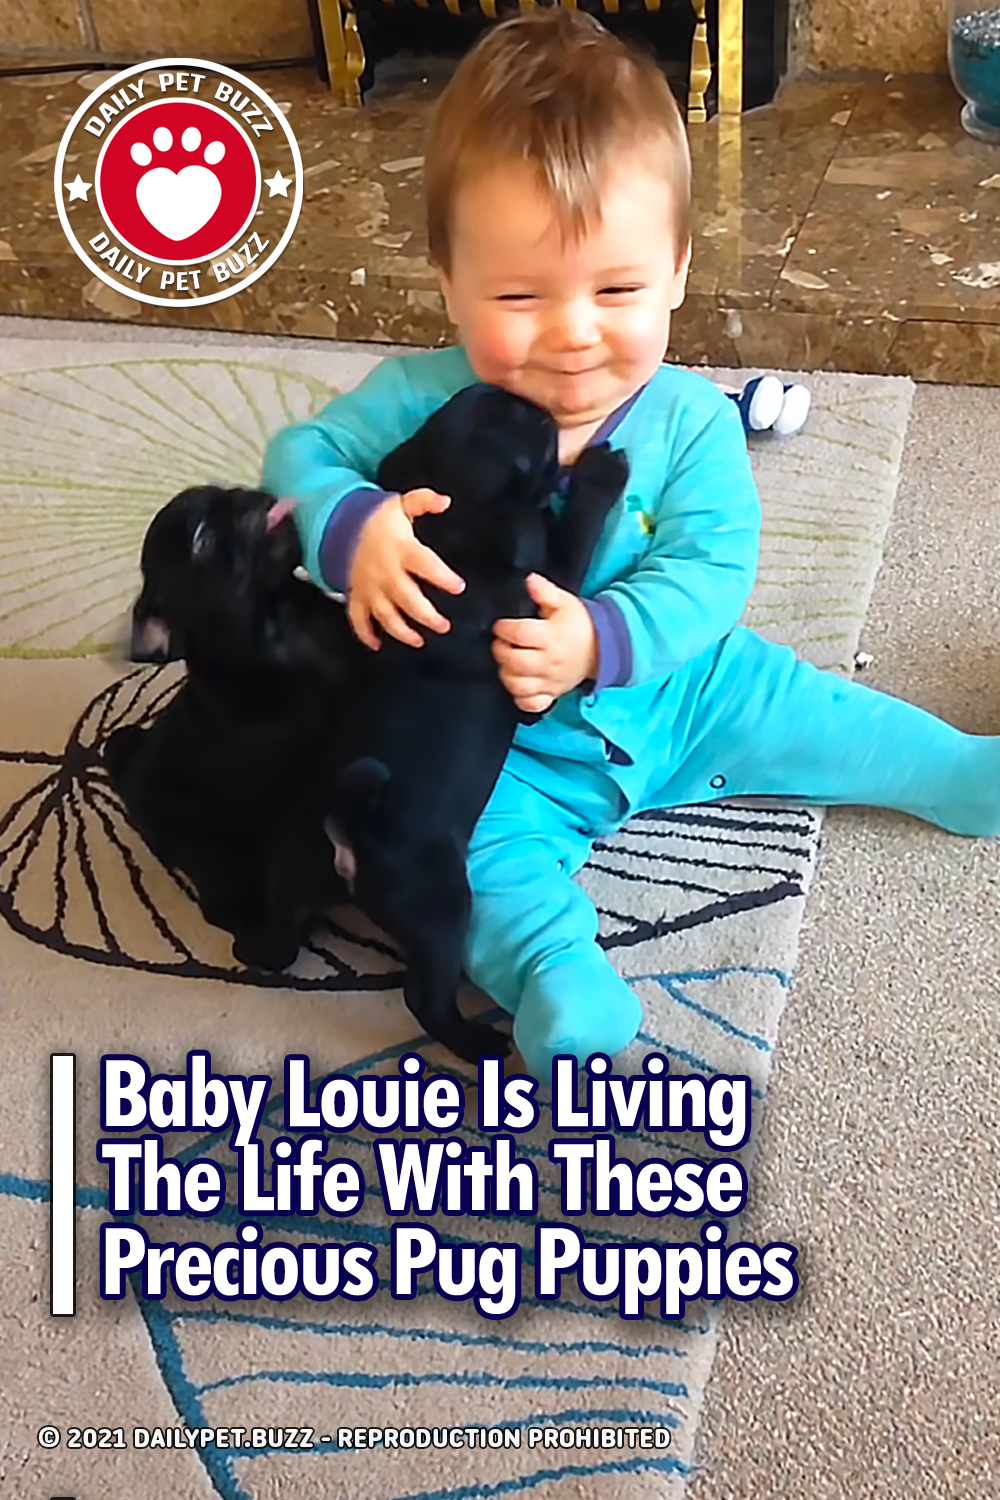 Baby Louie Is Living The Life With These Precious Pug Puppies